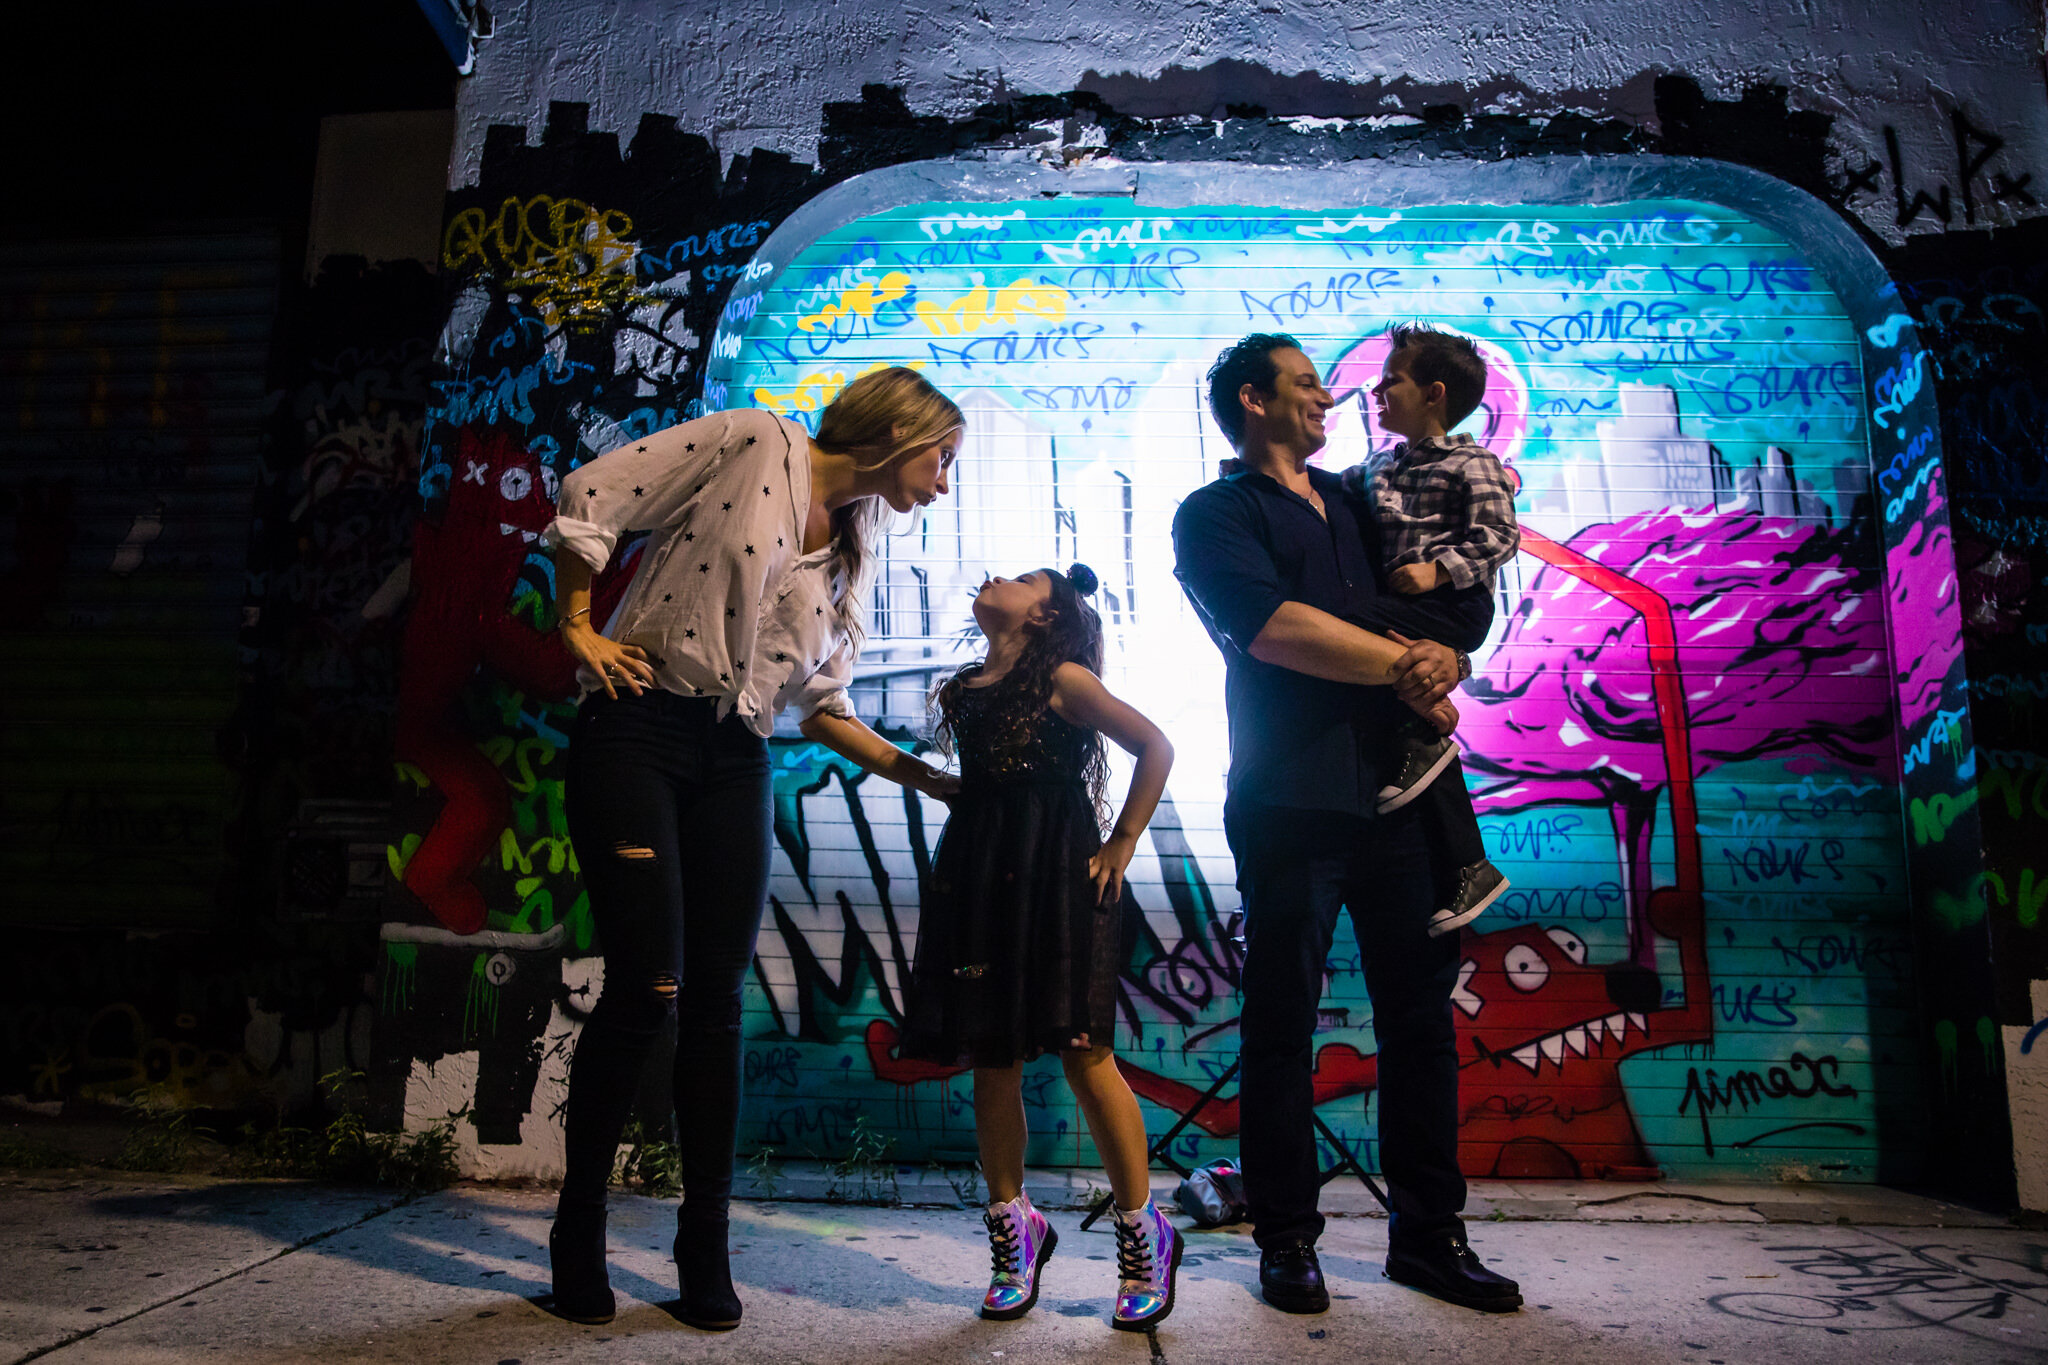 so-you-by-erica-sue-wynwood-miami-family-photo-session-night-flash-photography-0792.JPG